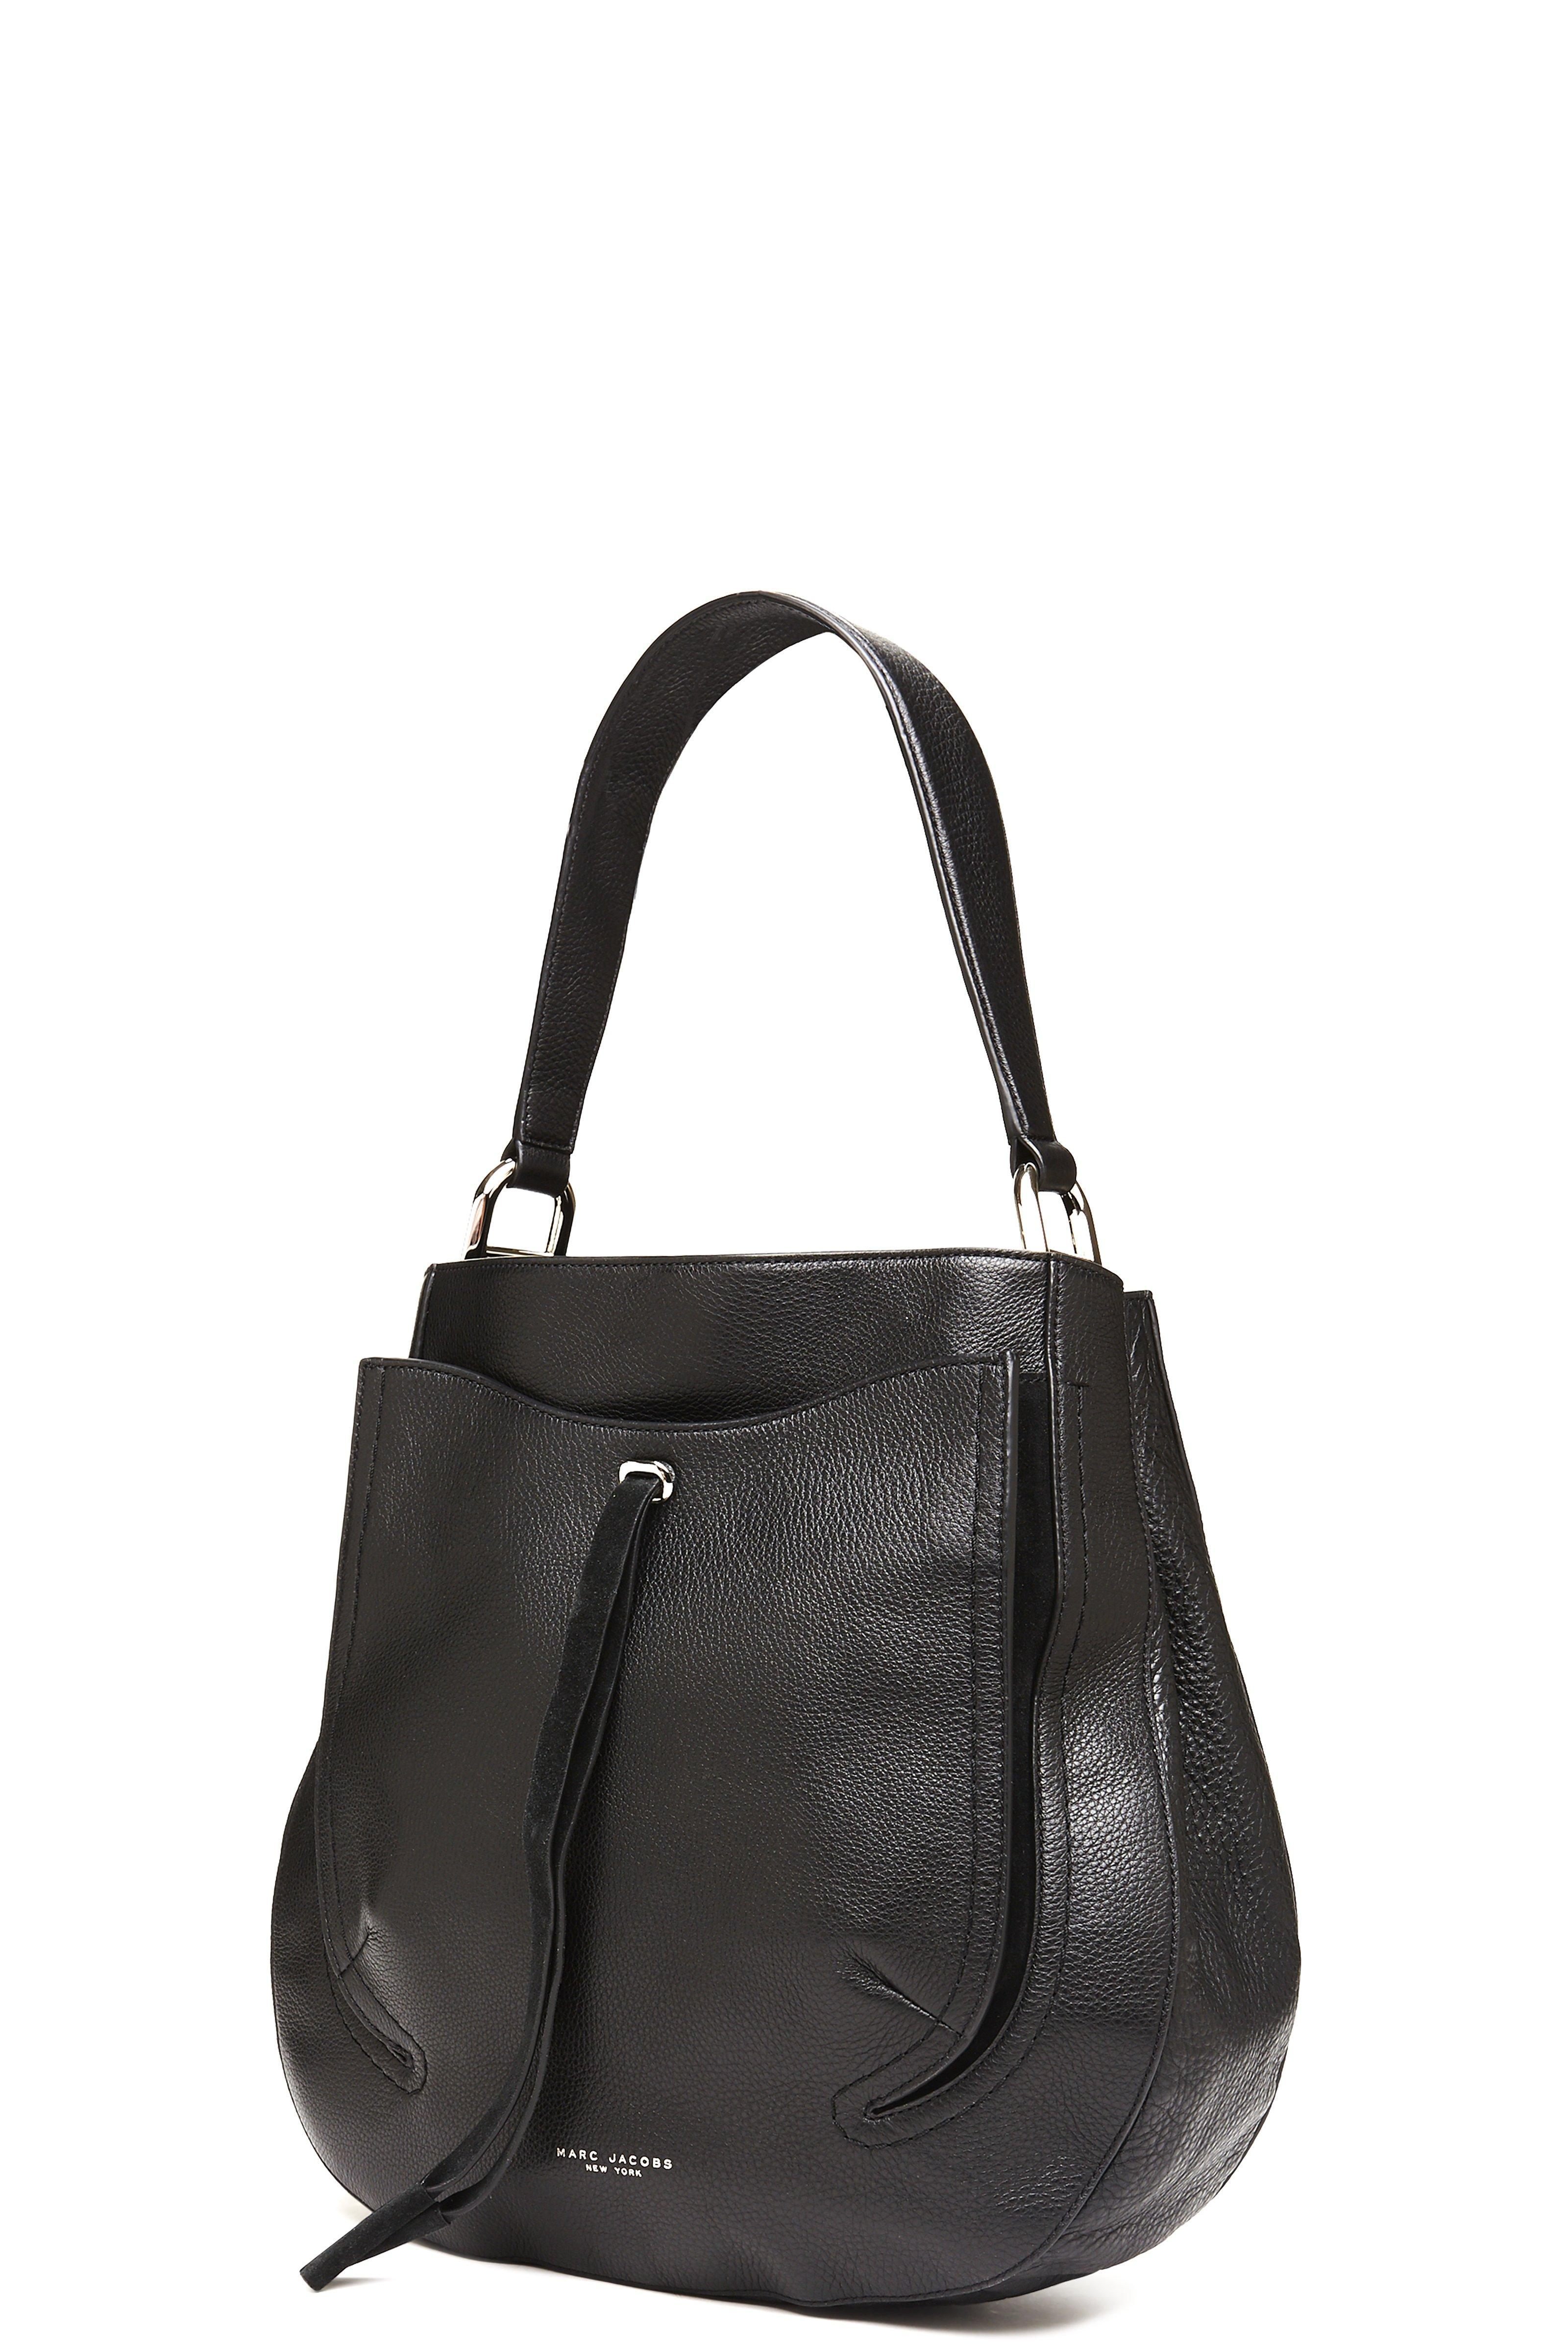 b0215519a6f Marc Jacobs Maverick Leather Hobo in Black - Lyst